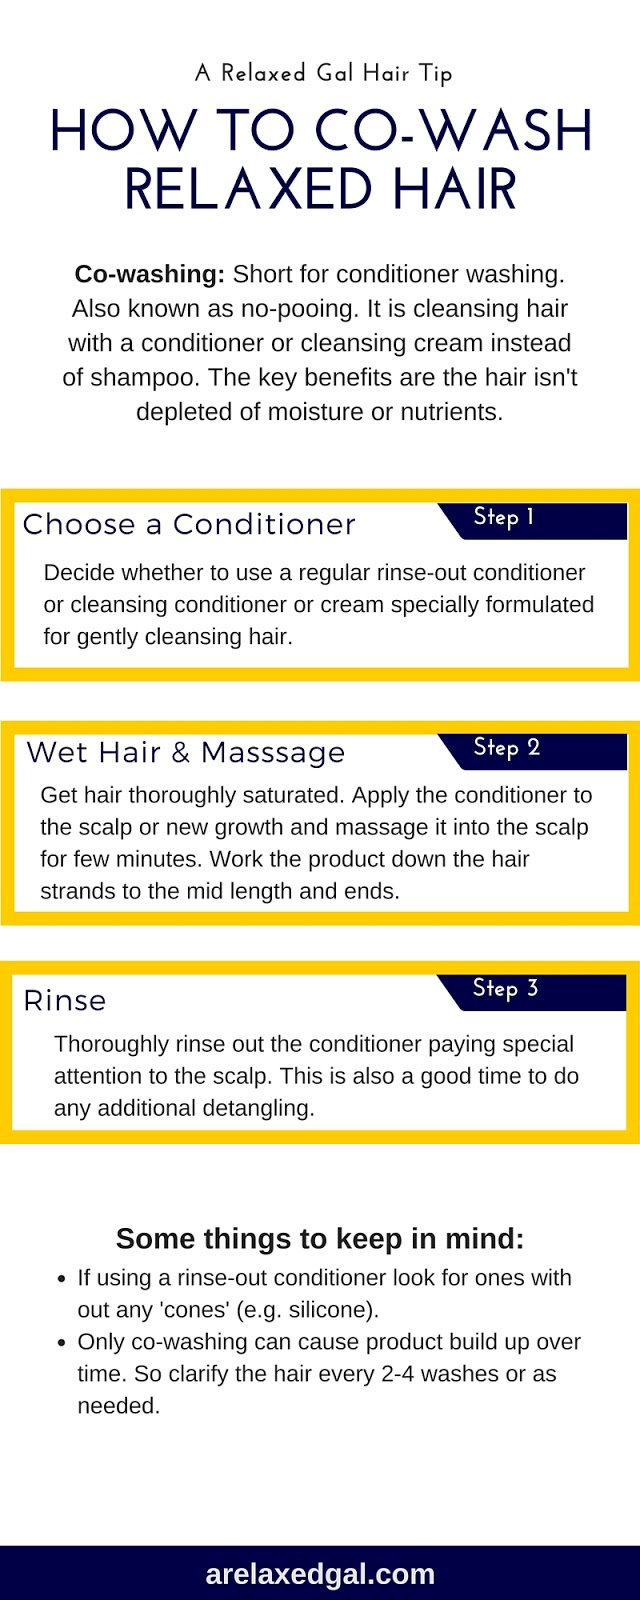 co-washing-relaxed-hair-infographic